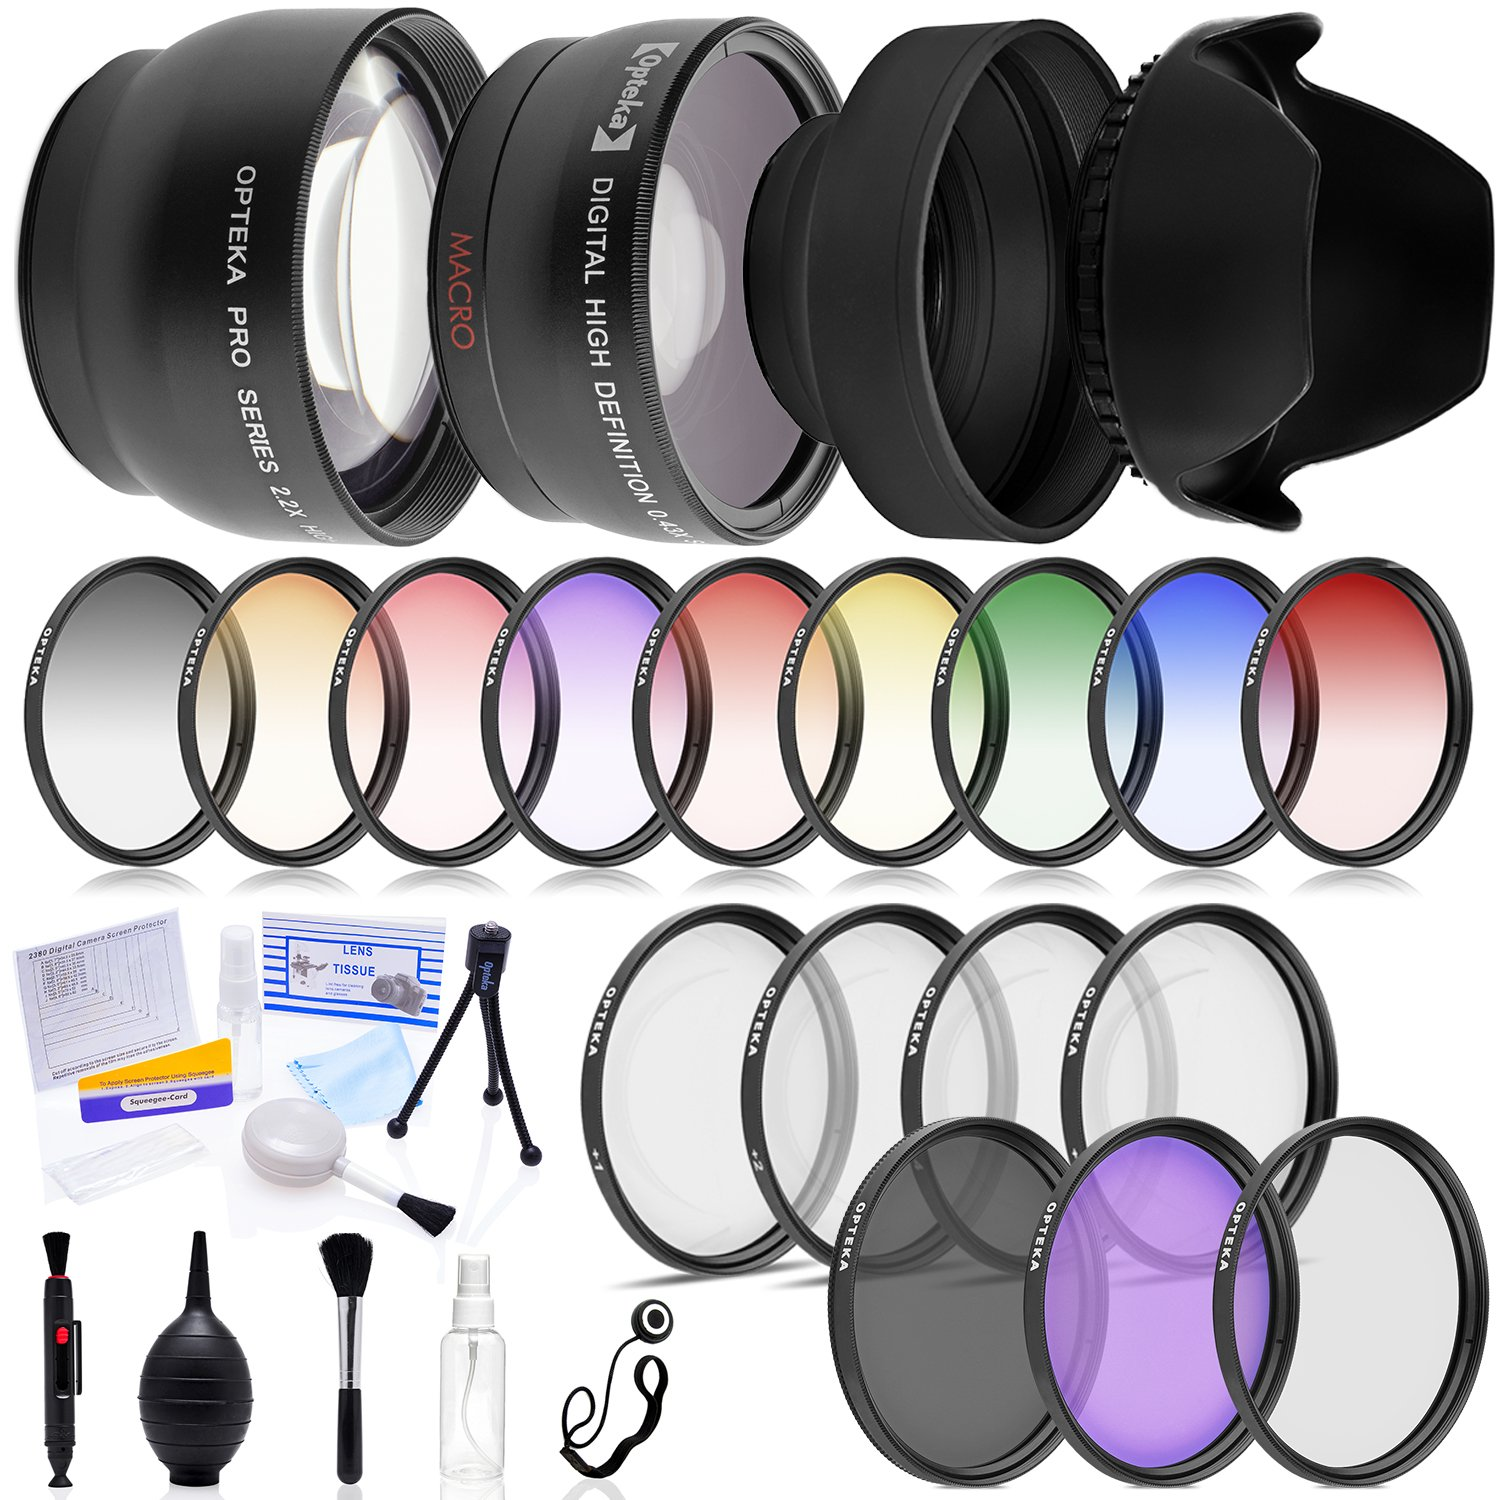 Multi-Piece Advanced Lens Package for The Nikon D100 D200 D300 D300S D700 D7000 D7100 D3000 D3100 D3200 D5000 D5100 D5200 D5300 D40 D40X D50 D60 D70 D90 D80 Includes Deluxe Lens and Filter Kit